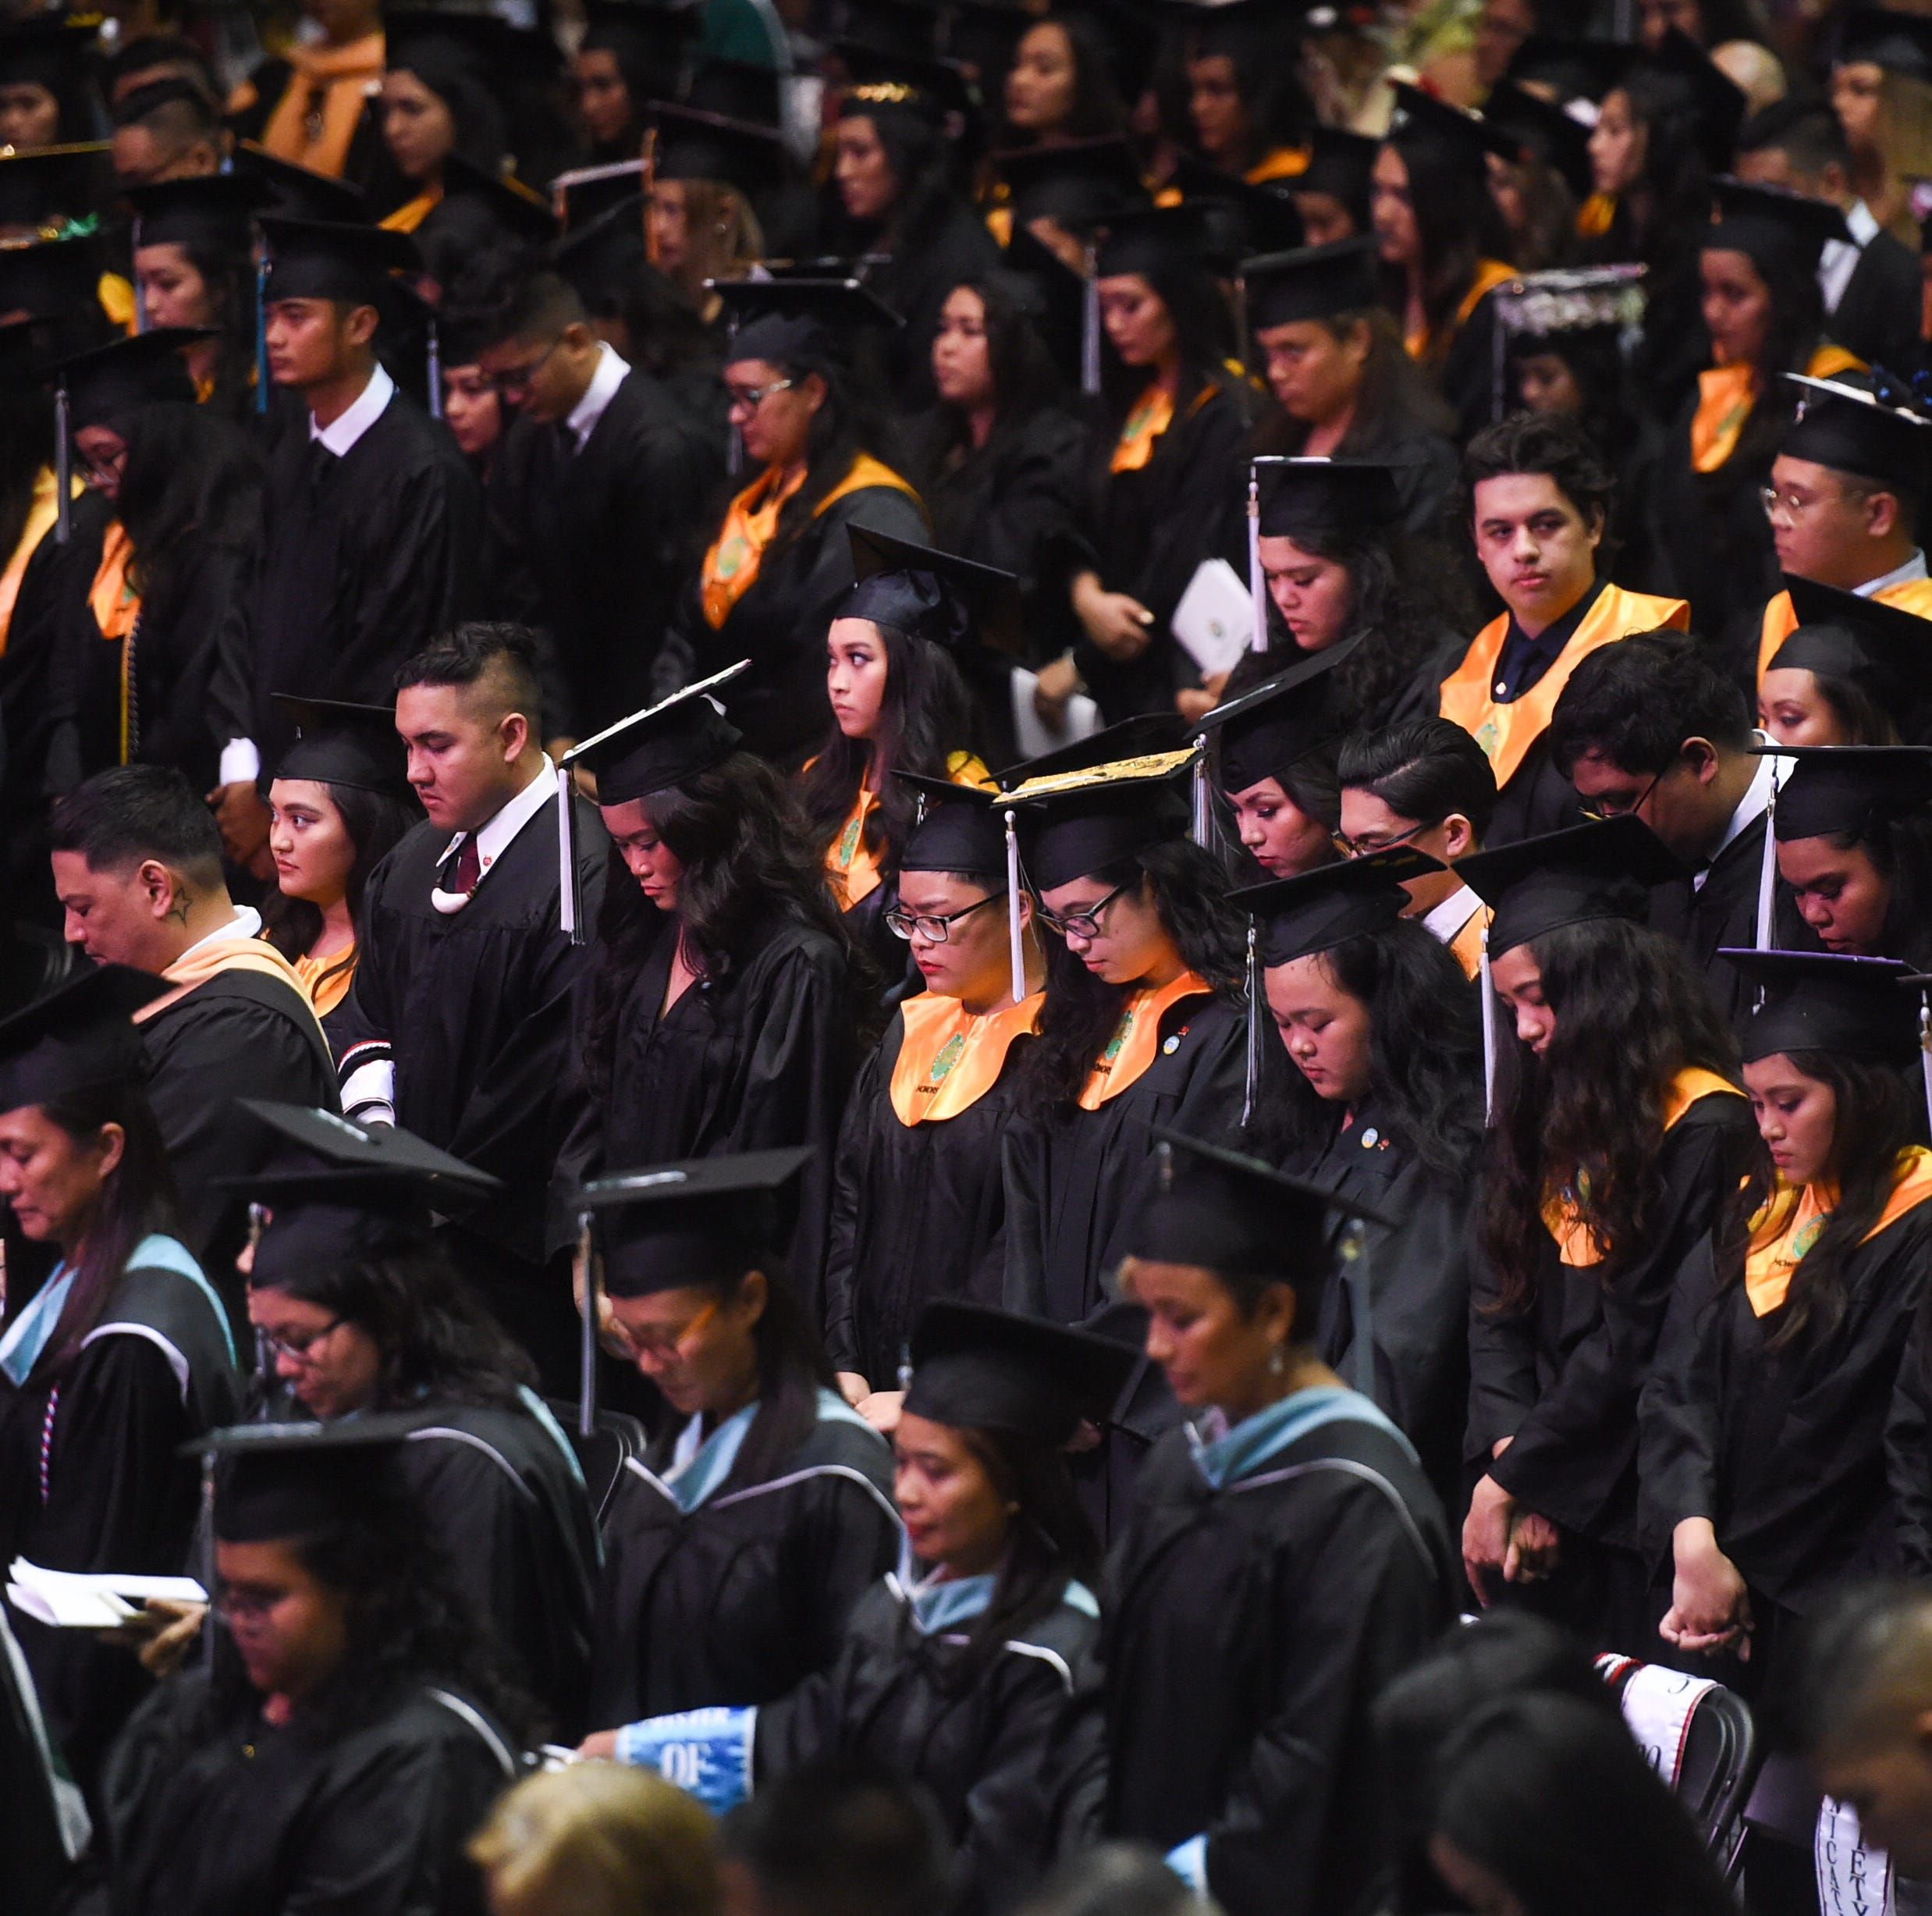 Largest graduating UOG class in history urged to remain curious and propel change